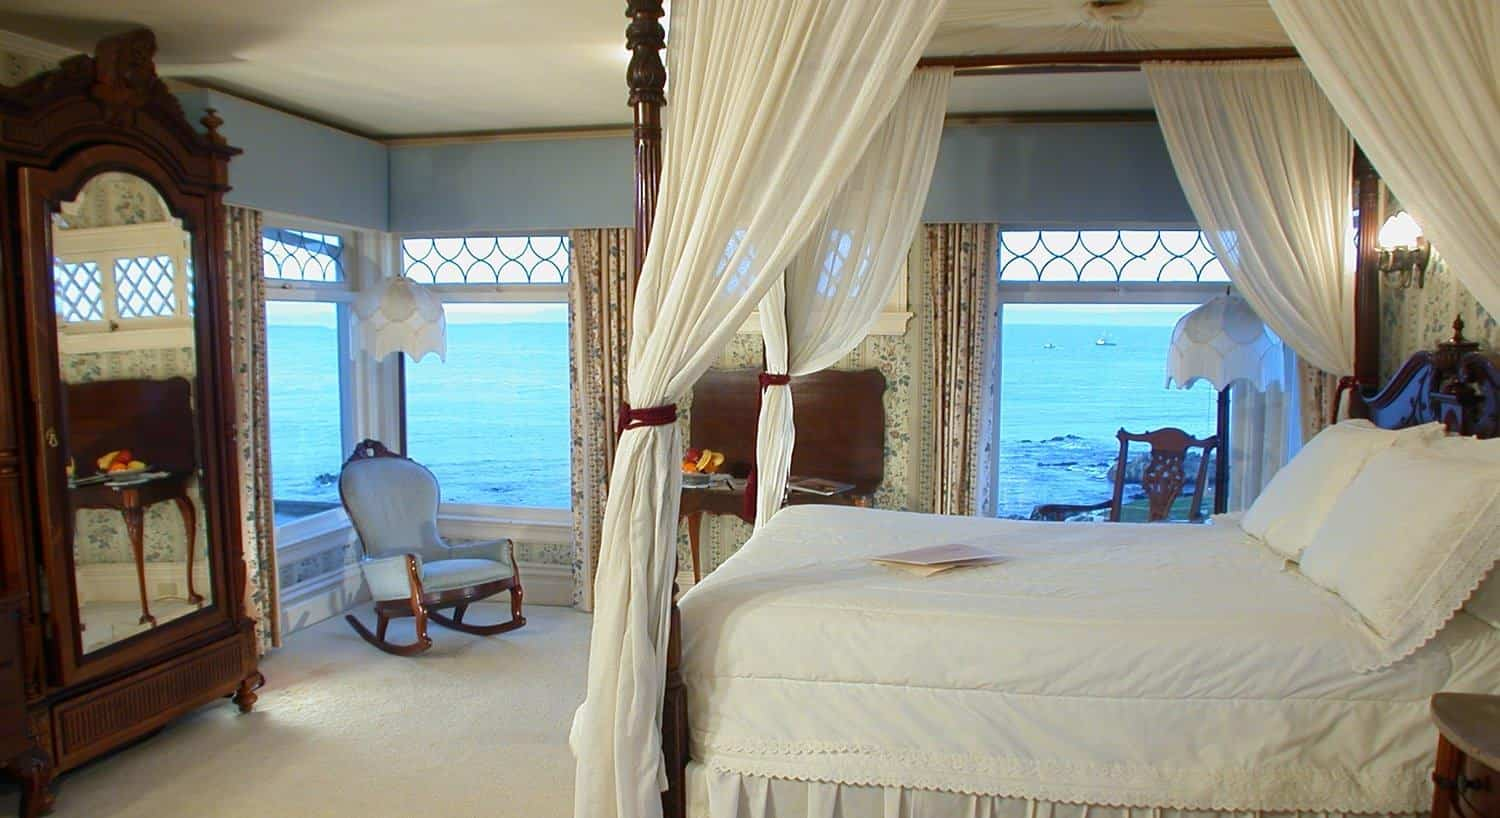 Parke guest room, windows overlooking the ocean, canopy bed with ivory canopy and bedding, sitting chairs and armoire